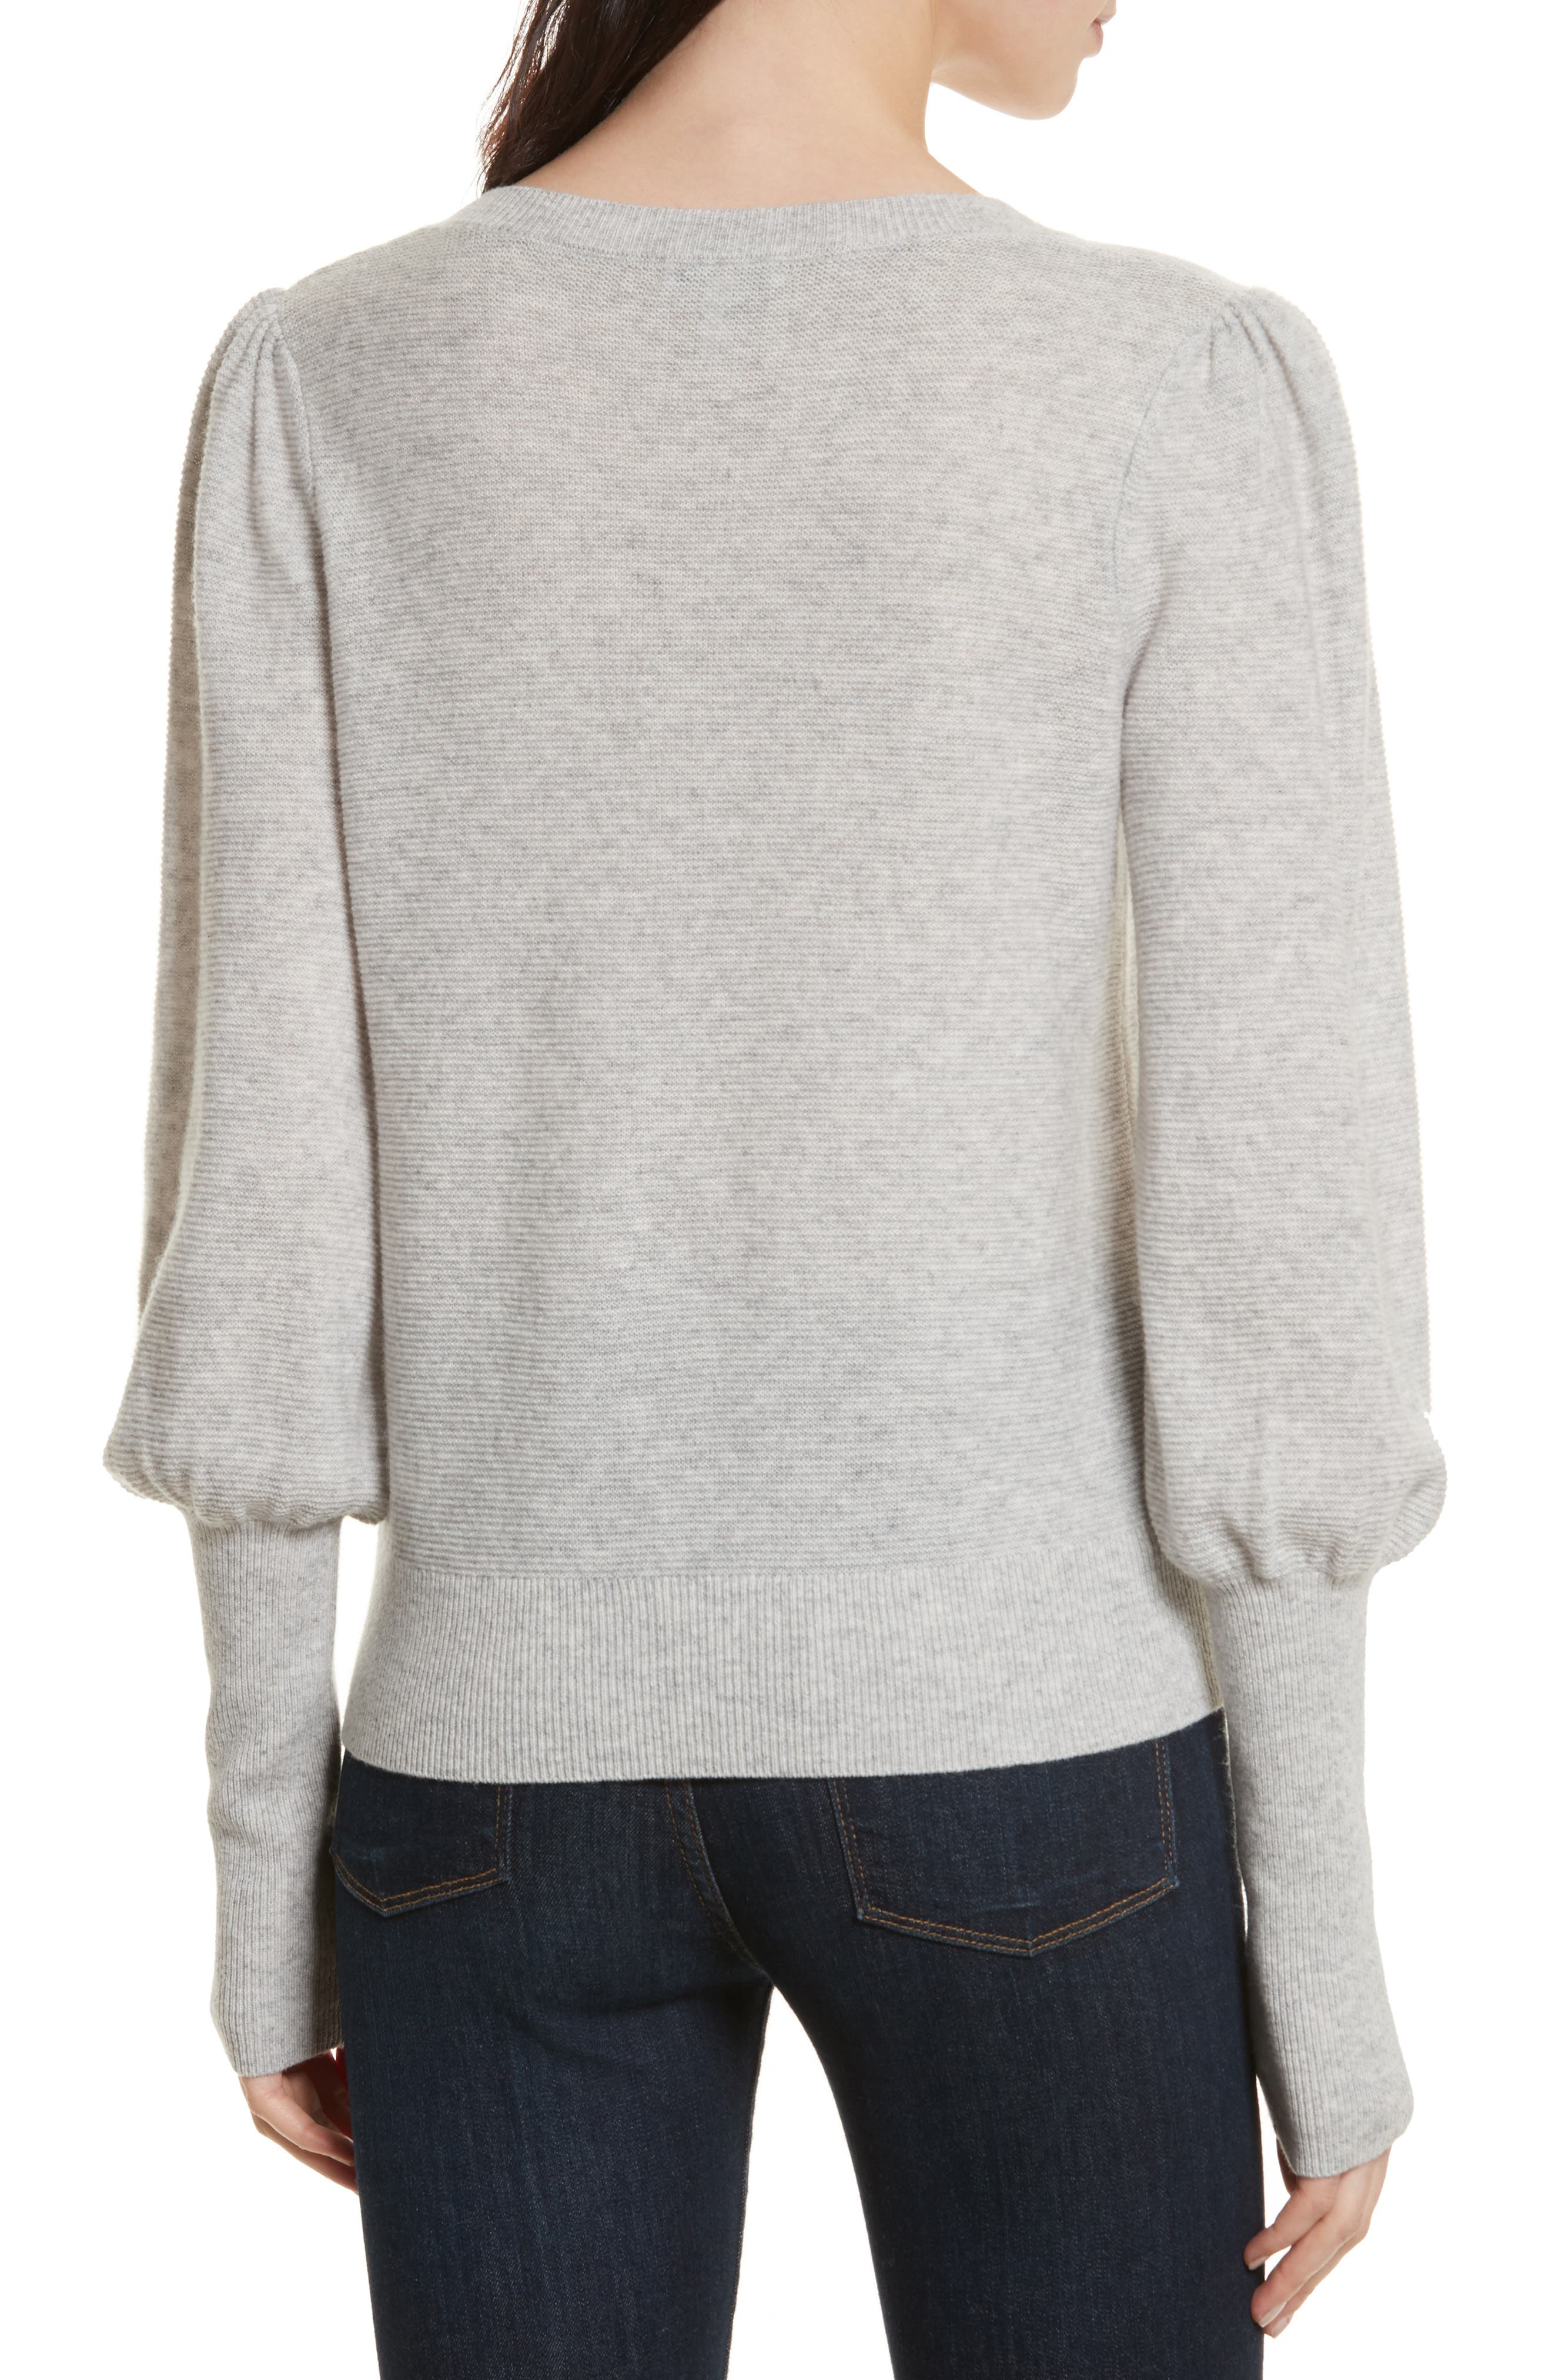 Noely Wool and Cashmere Sweater,                             Alternate thumbnail 2, color,                             Light Heather Grey